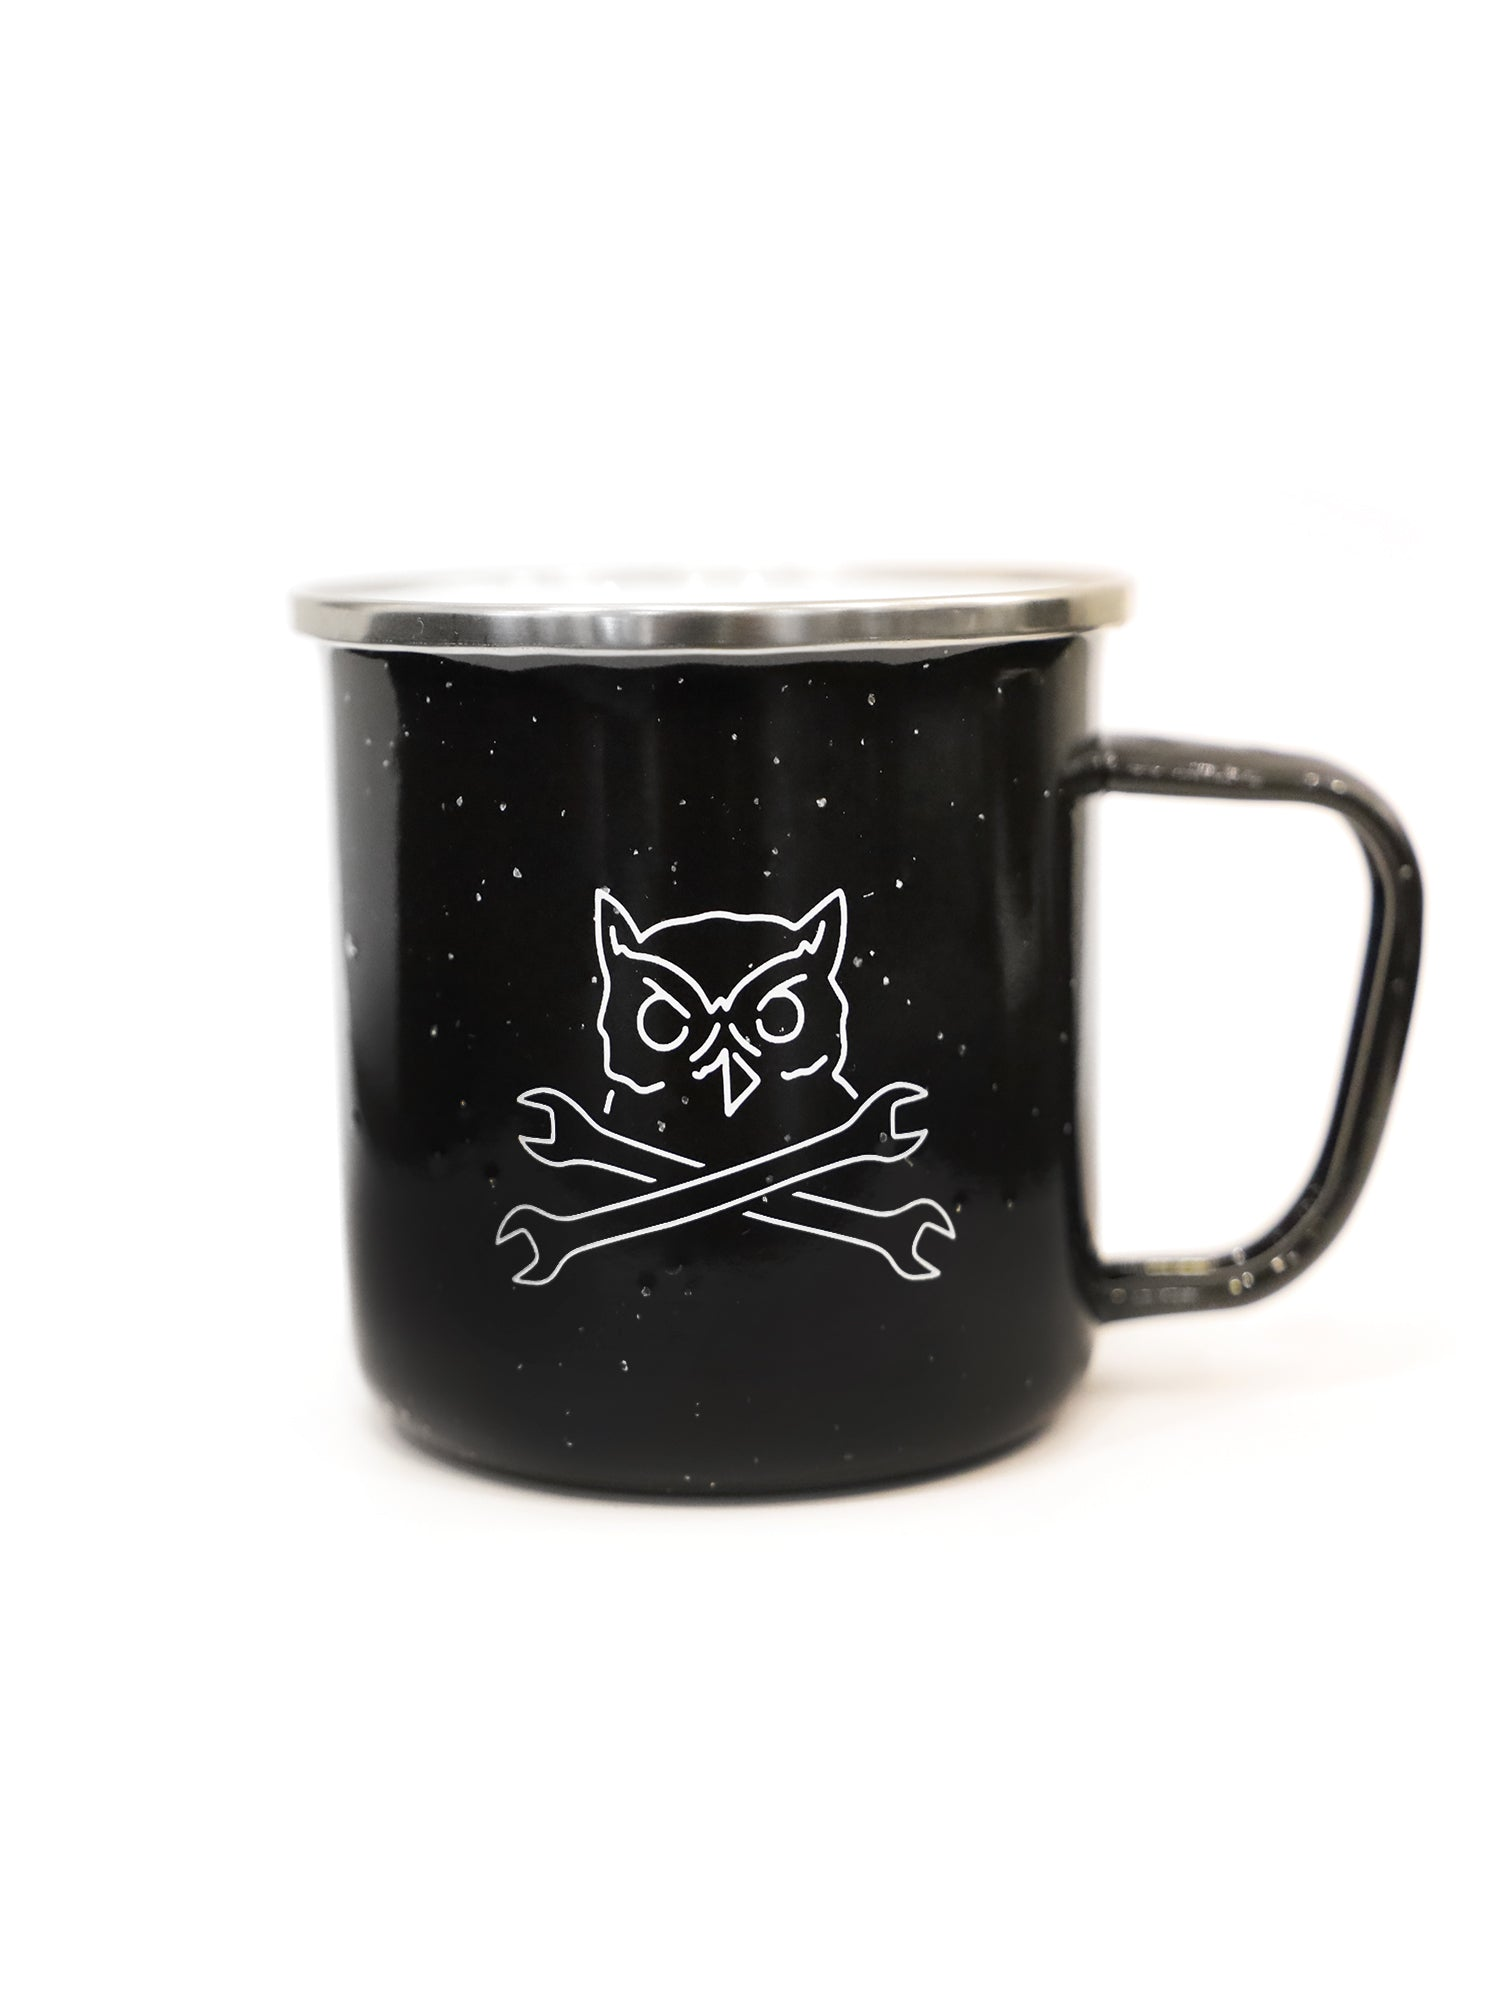 OWL CAMP MUG - BLACK - Tankfarm & Co.